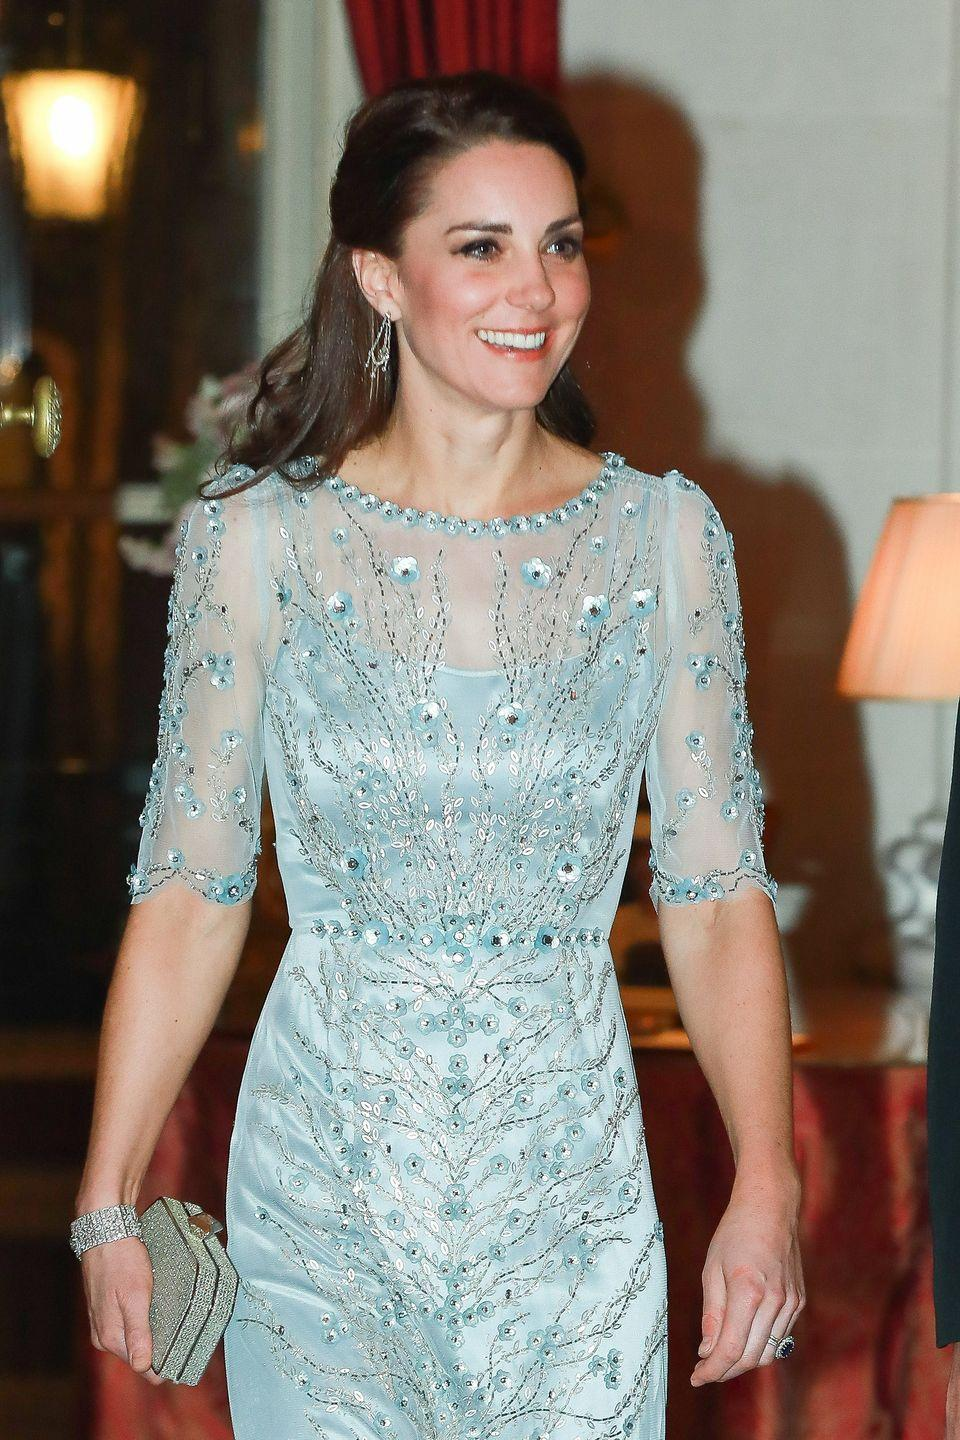 """<p>Post-Princess Charlotte, Kate supposedly turned to a more fruit- and vegetable-forward routine. She was <a href=""""https://www.delish.com/food-news/g3869/kate-middleton-diet/?slide=5"""" rel=""""nofollow noopener"""" target=""""_blank"""" data-ylk=""""slk:said"""" class=""""link rapid-noclick-resp"""">said</a> to be super into ceviche, goji berries, gazpacho, watermelon salad, almond milk and tabbouleh after giving birth, not only because it was delish, but also because it helped her lose the weight she wanted to get rid of.</p>"""